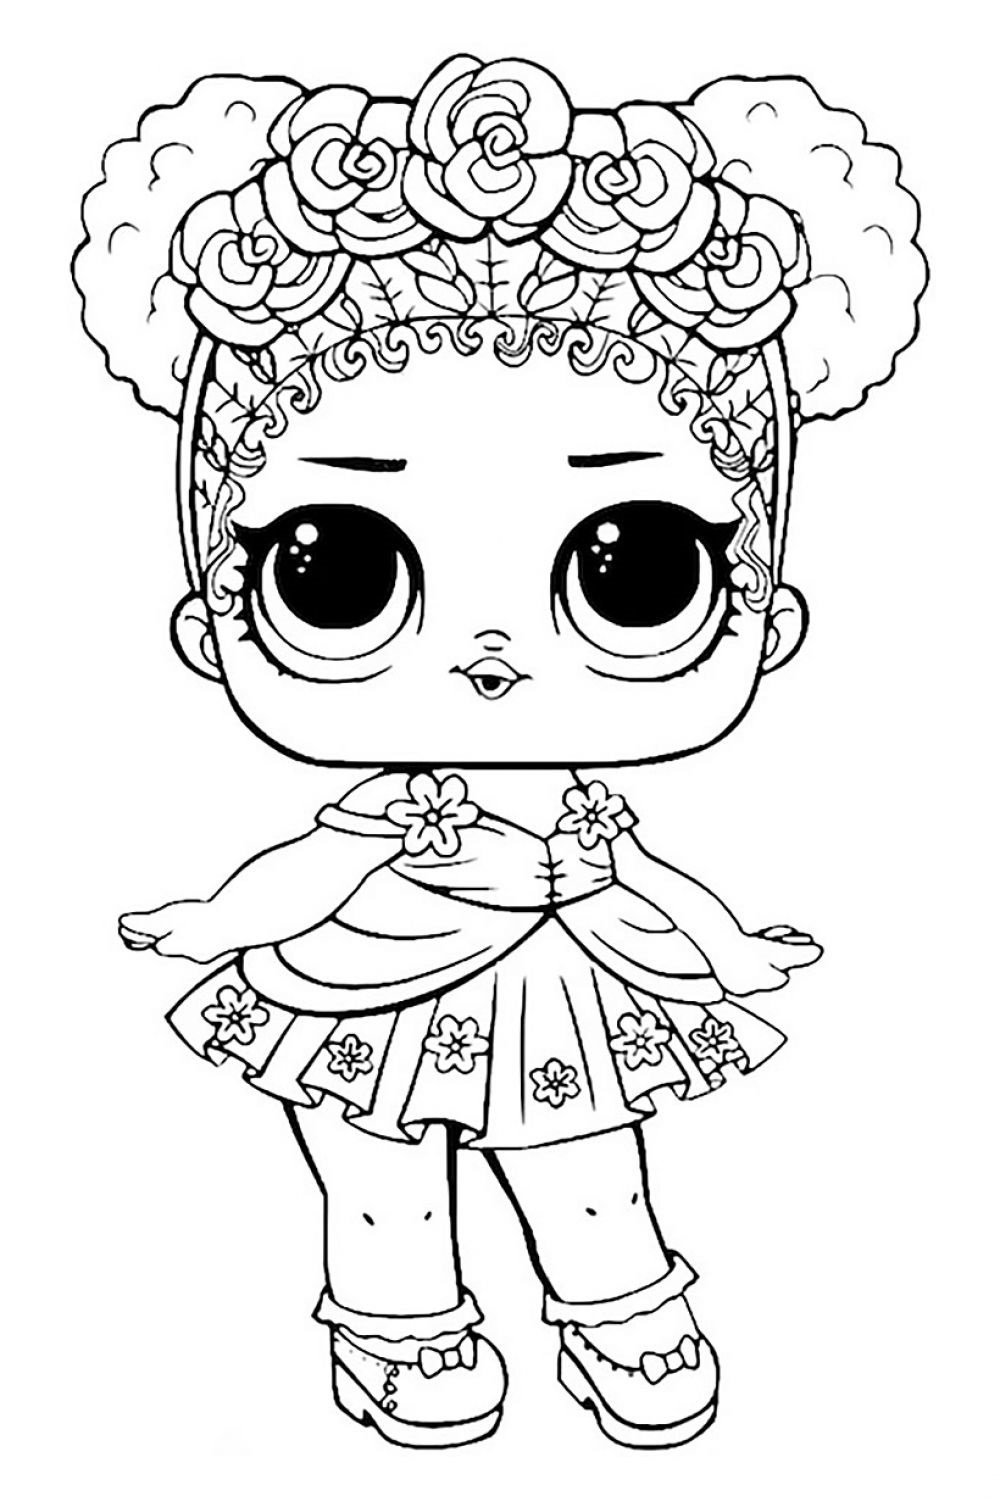 LOL Surprise Sparkle Coloring Pages - 12 Free Printable Coloring ... | 1500x1000